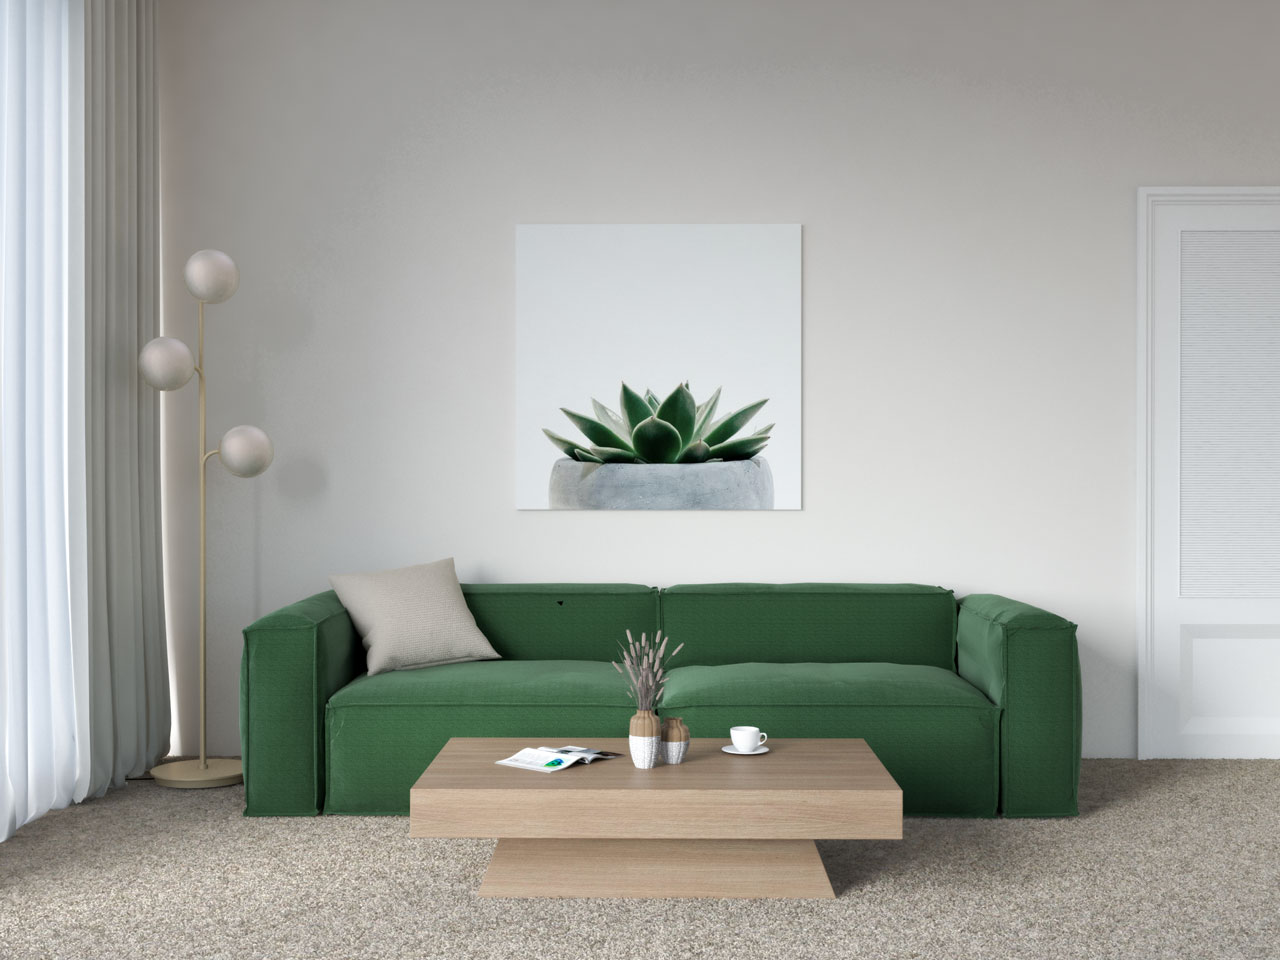 Dark green couch with tan carpet in living room